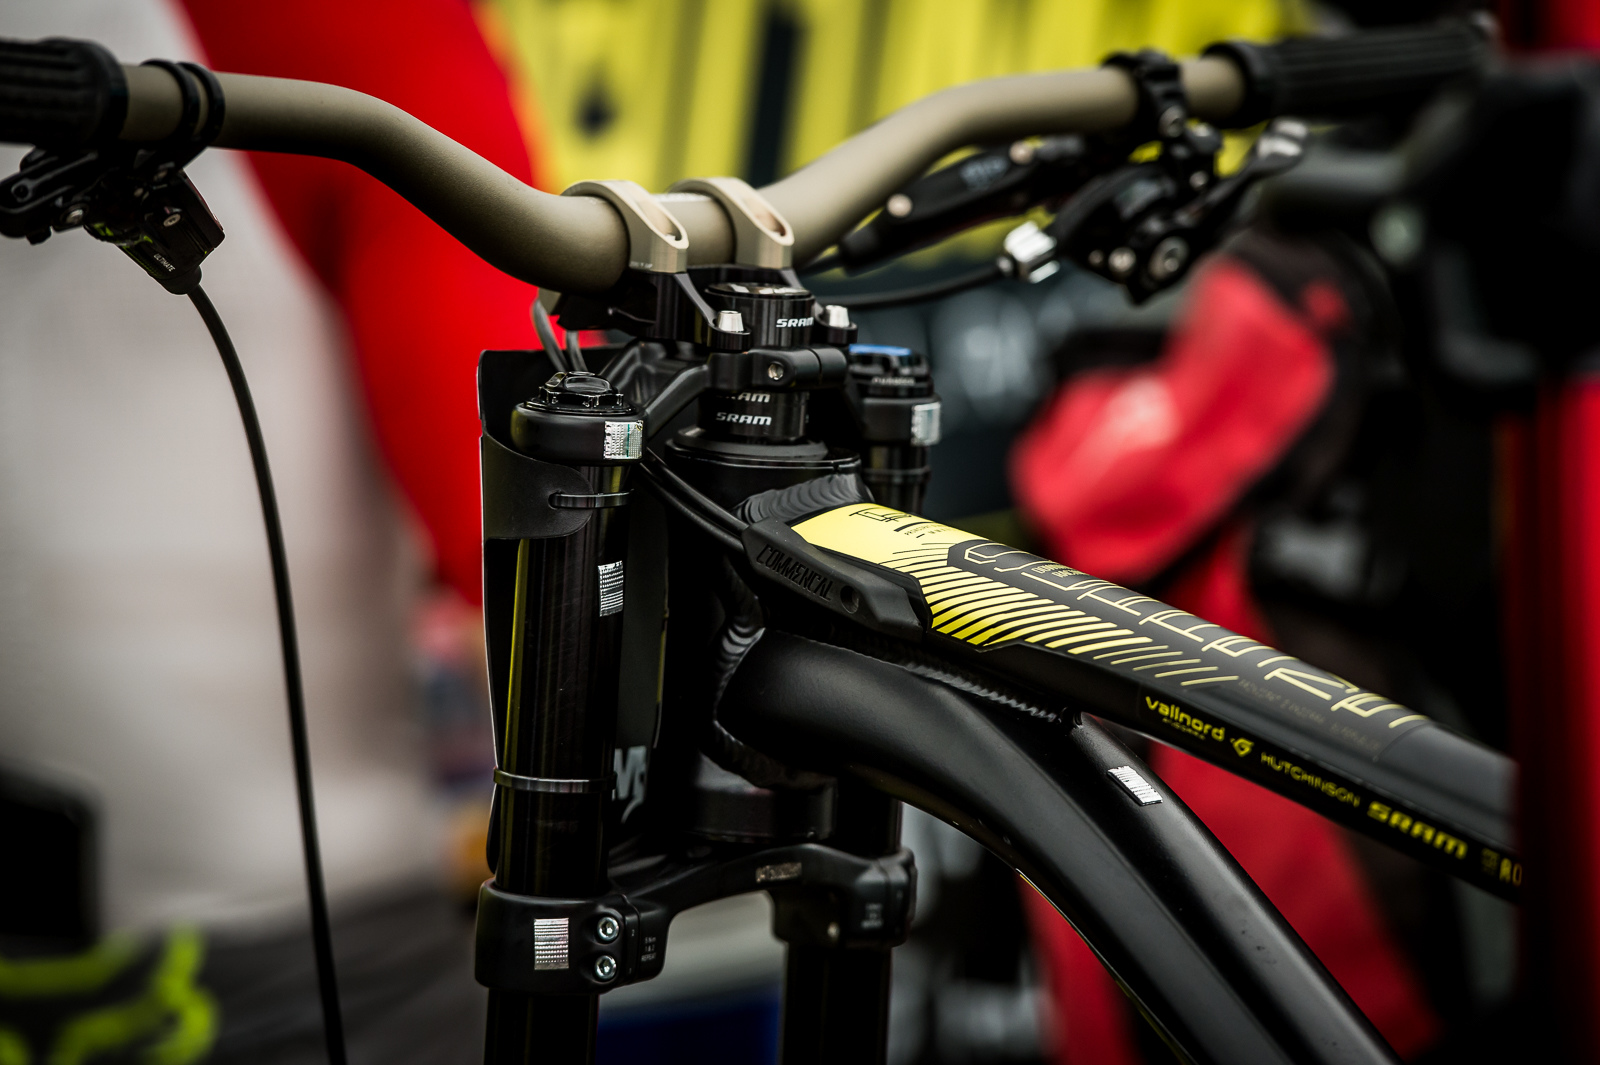 These tiny vibration reduction sensors from Axxios apparently have a profound effect on bike handling and the Commencal team love them.